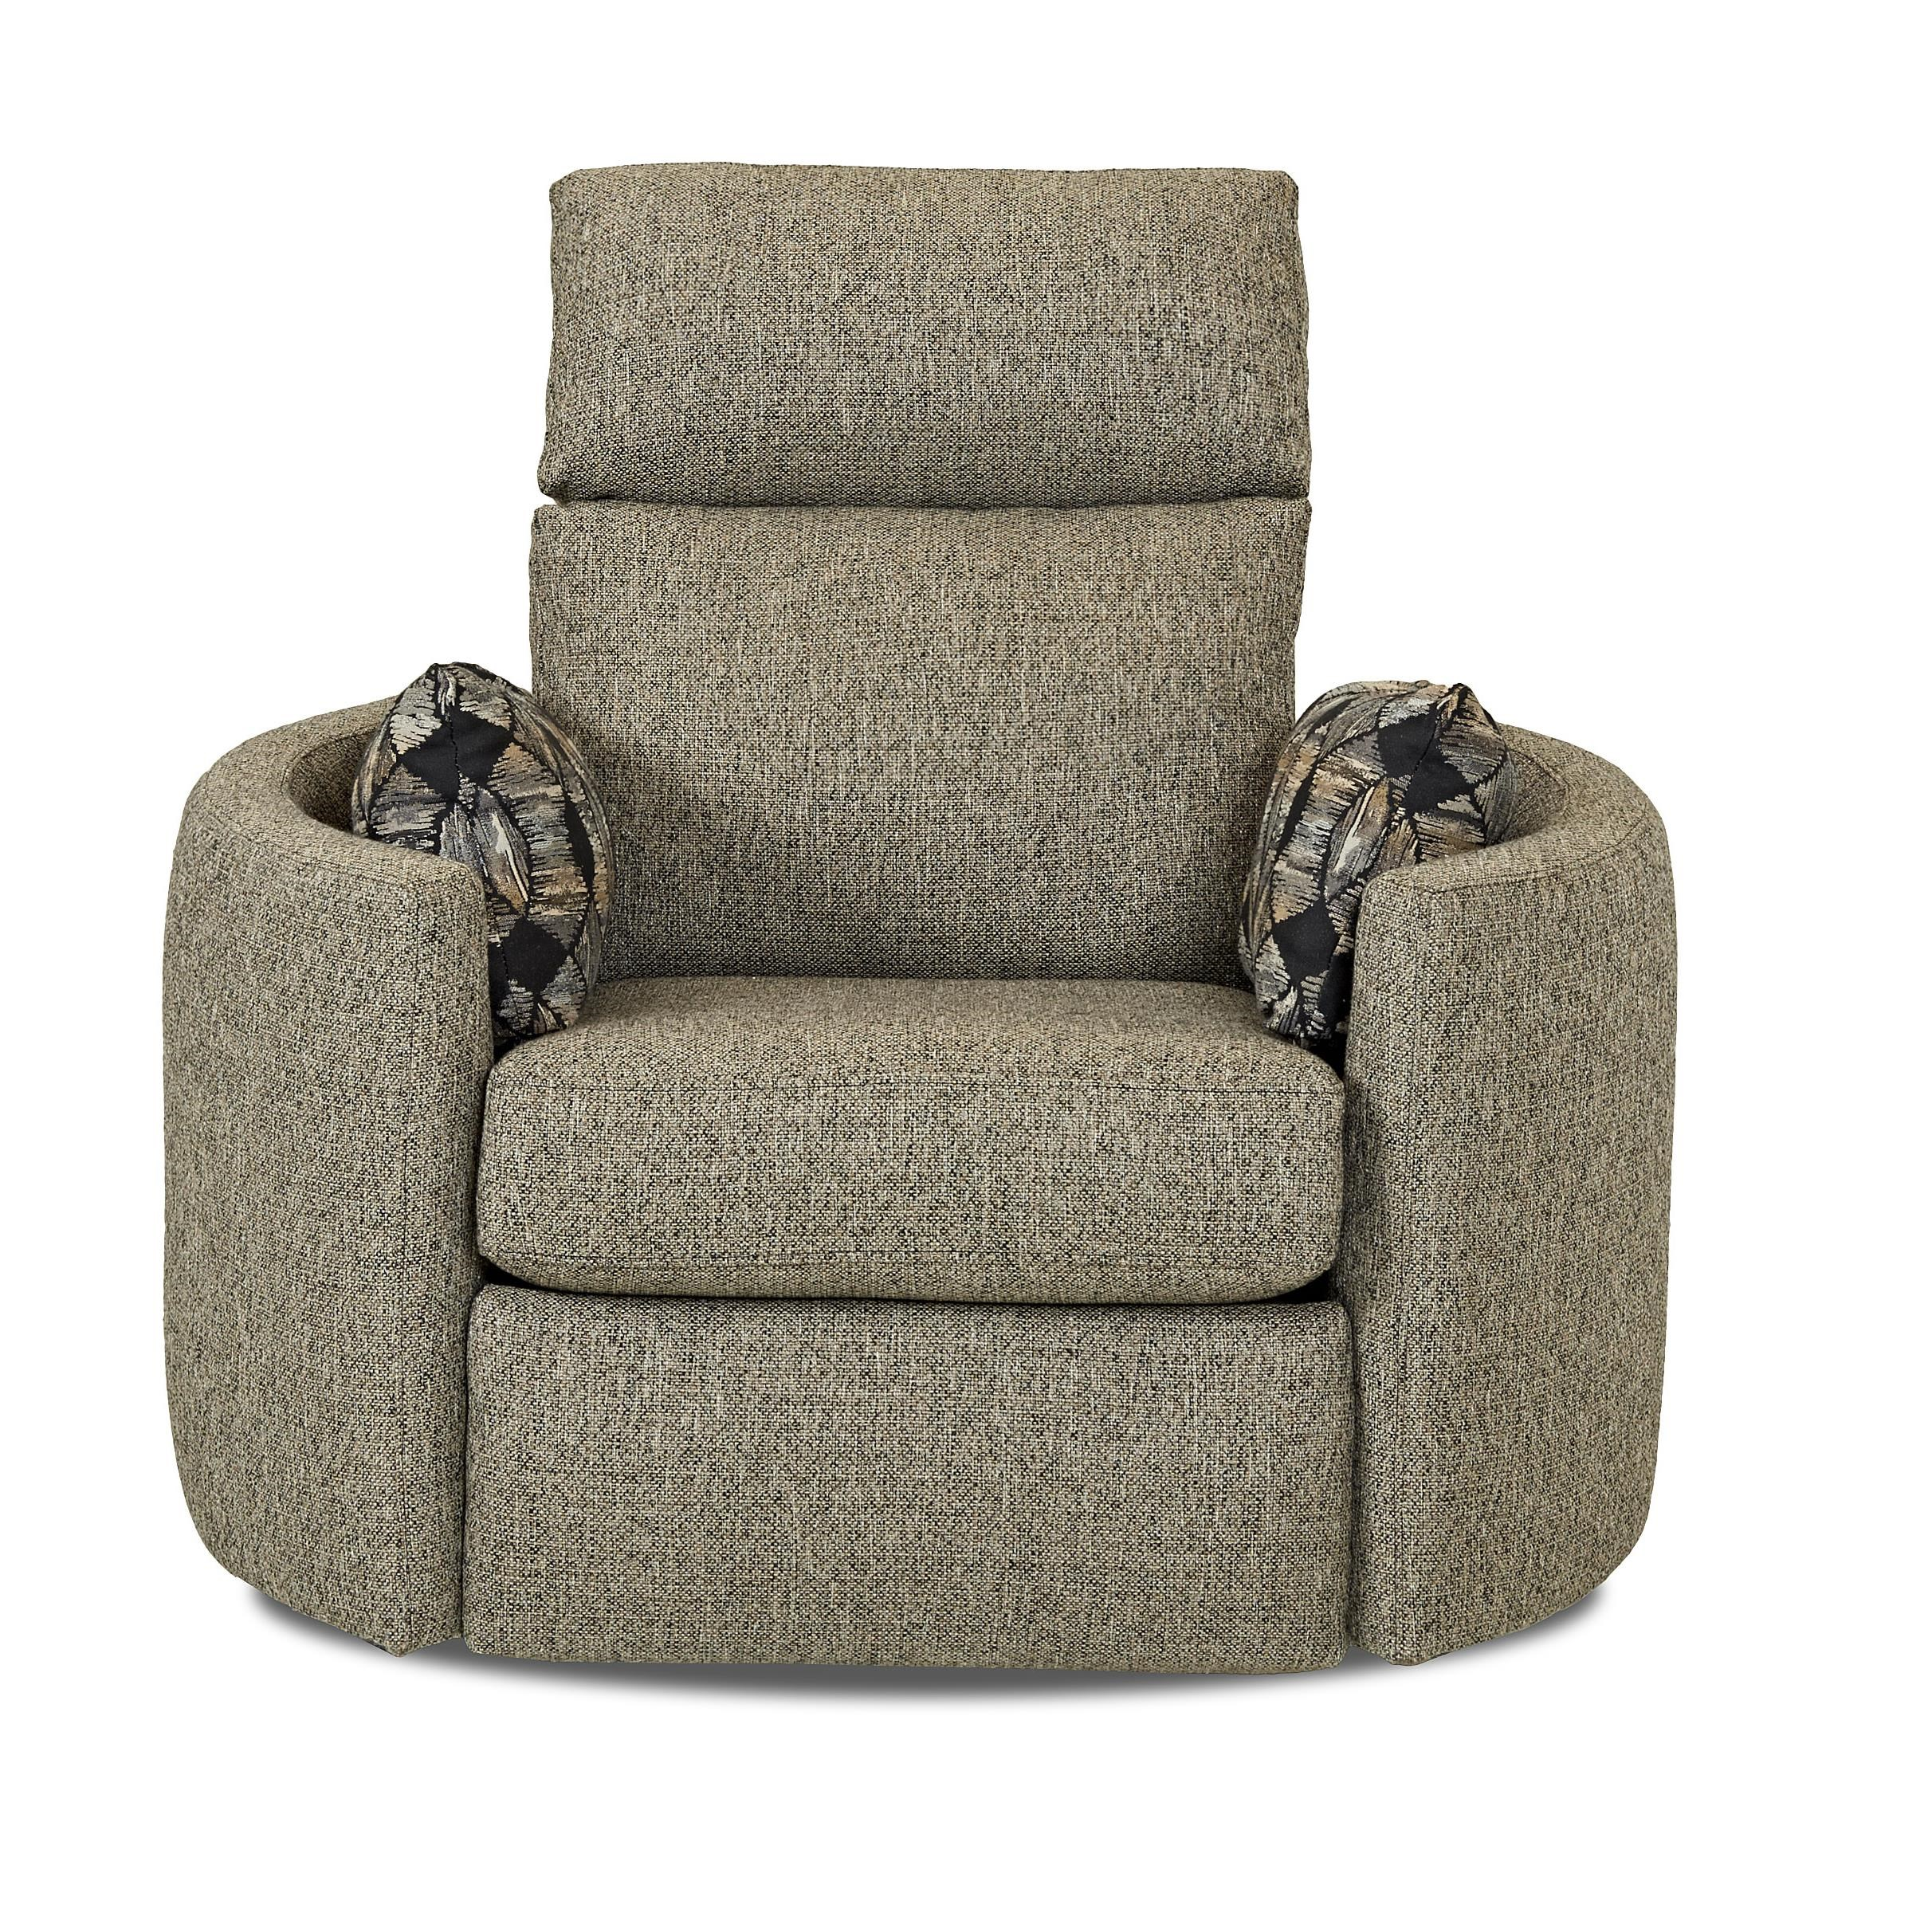 Klaussner Cosmo Contemporary Reclining Swivel Chair  sc 1 st  Wayside Furniture & Klaussner Cosmo Contemporary Reclining Swivel Chair - Wayside ... islam-shia.org